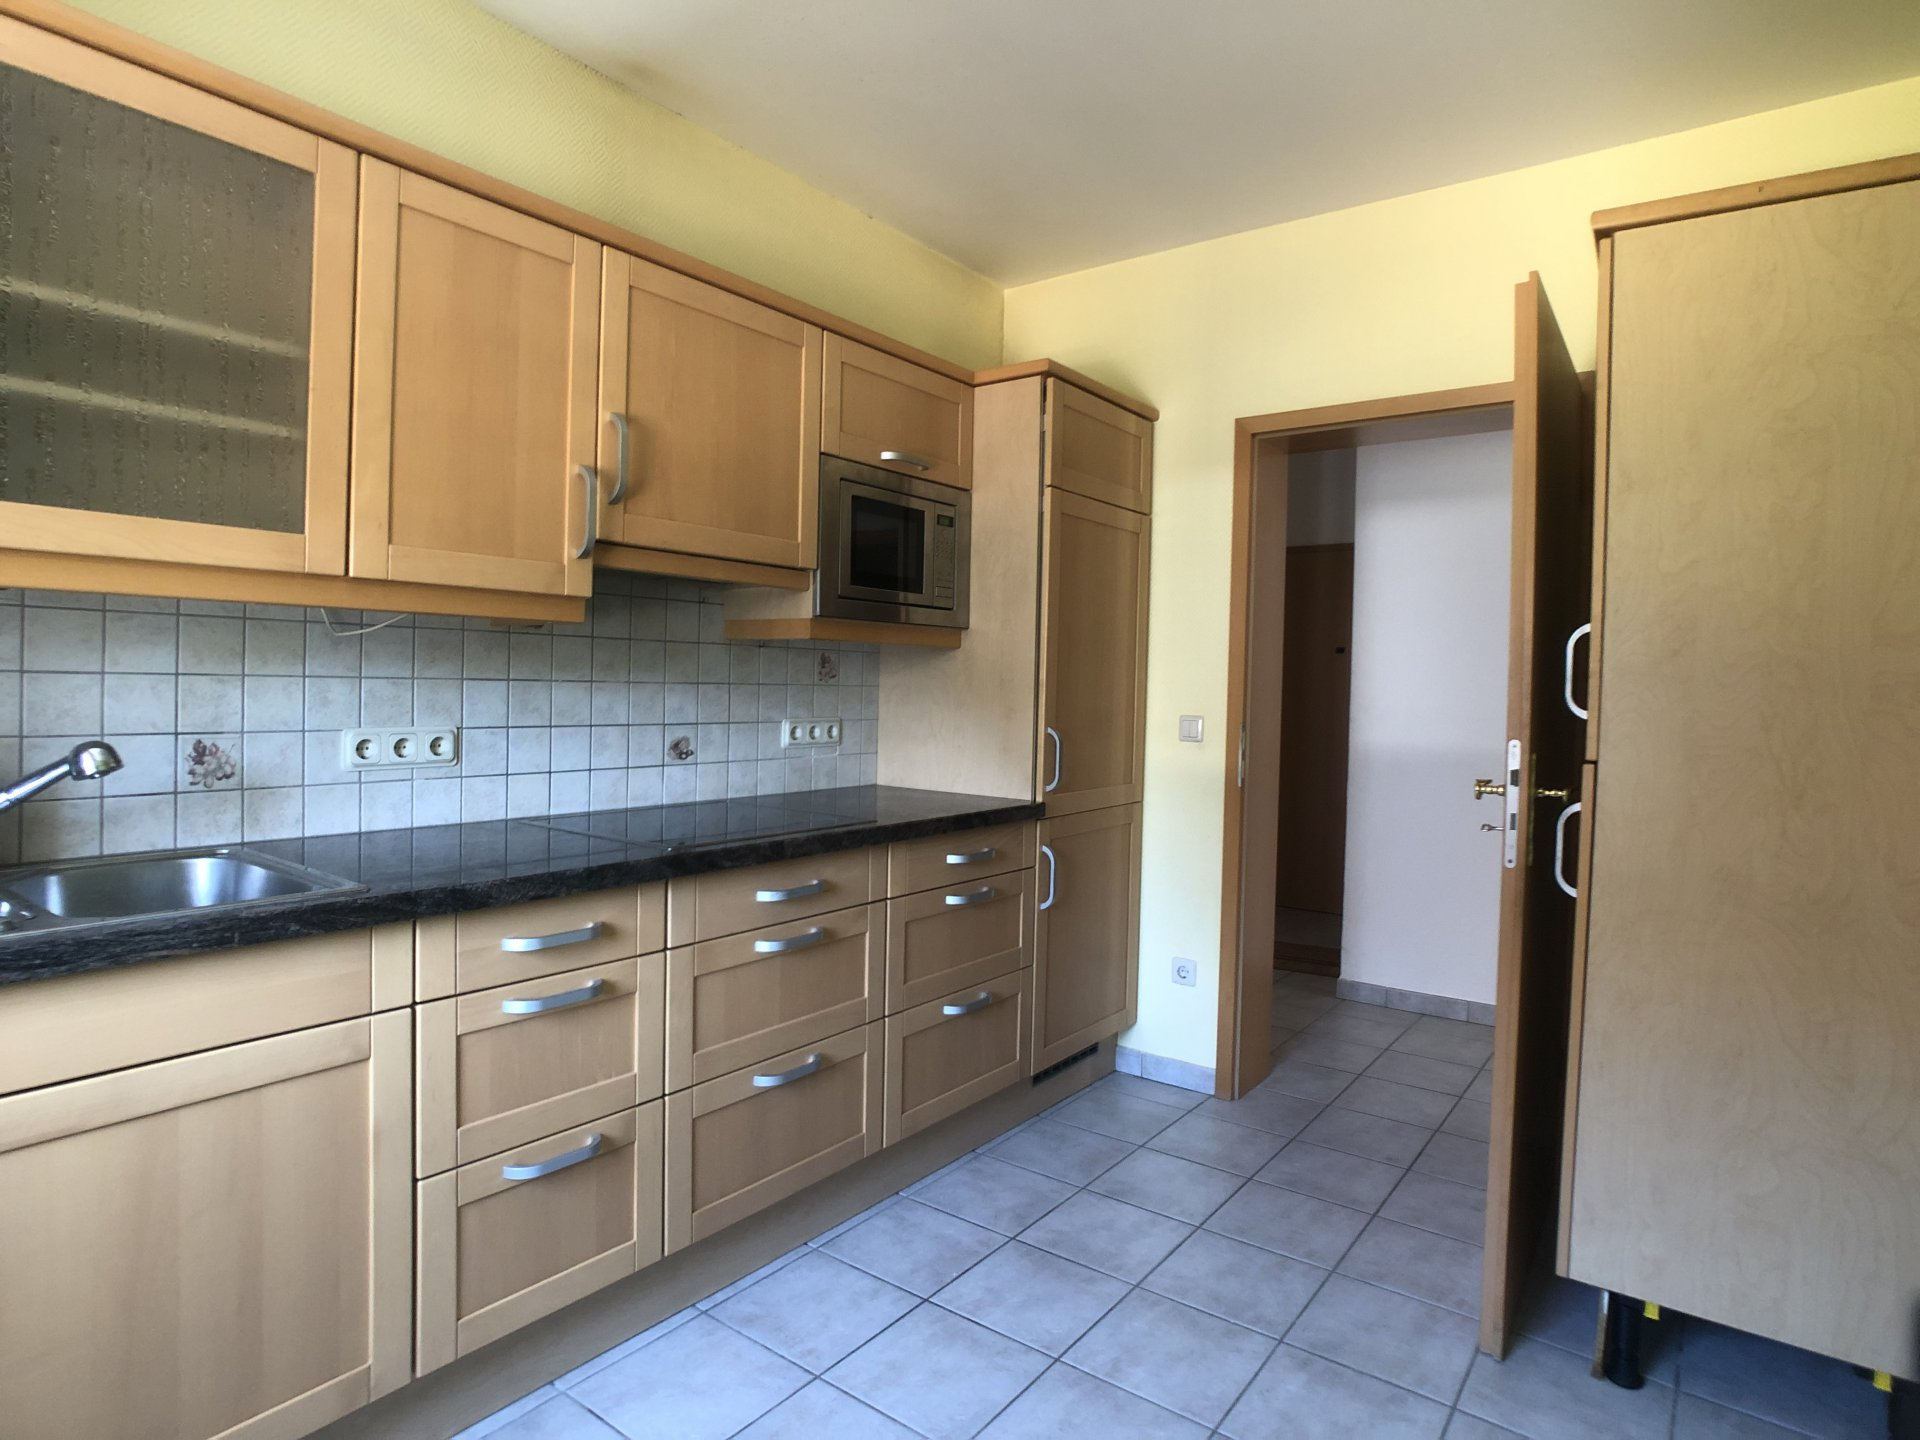 Location Appartement - Niederkorn - Luxembourg